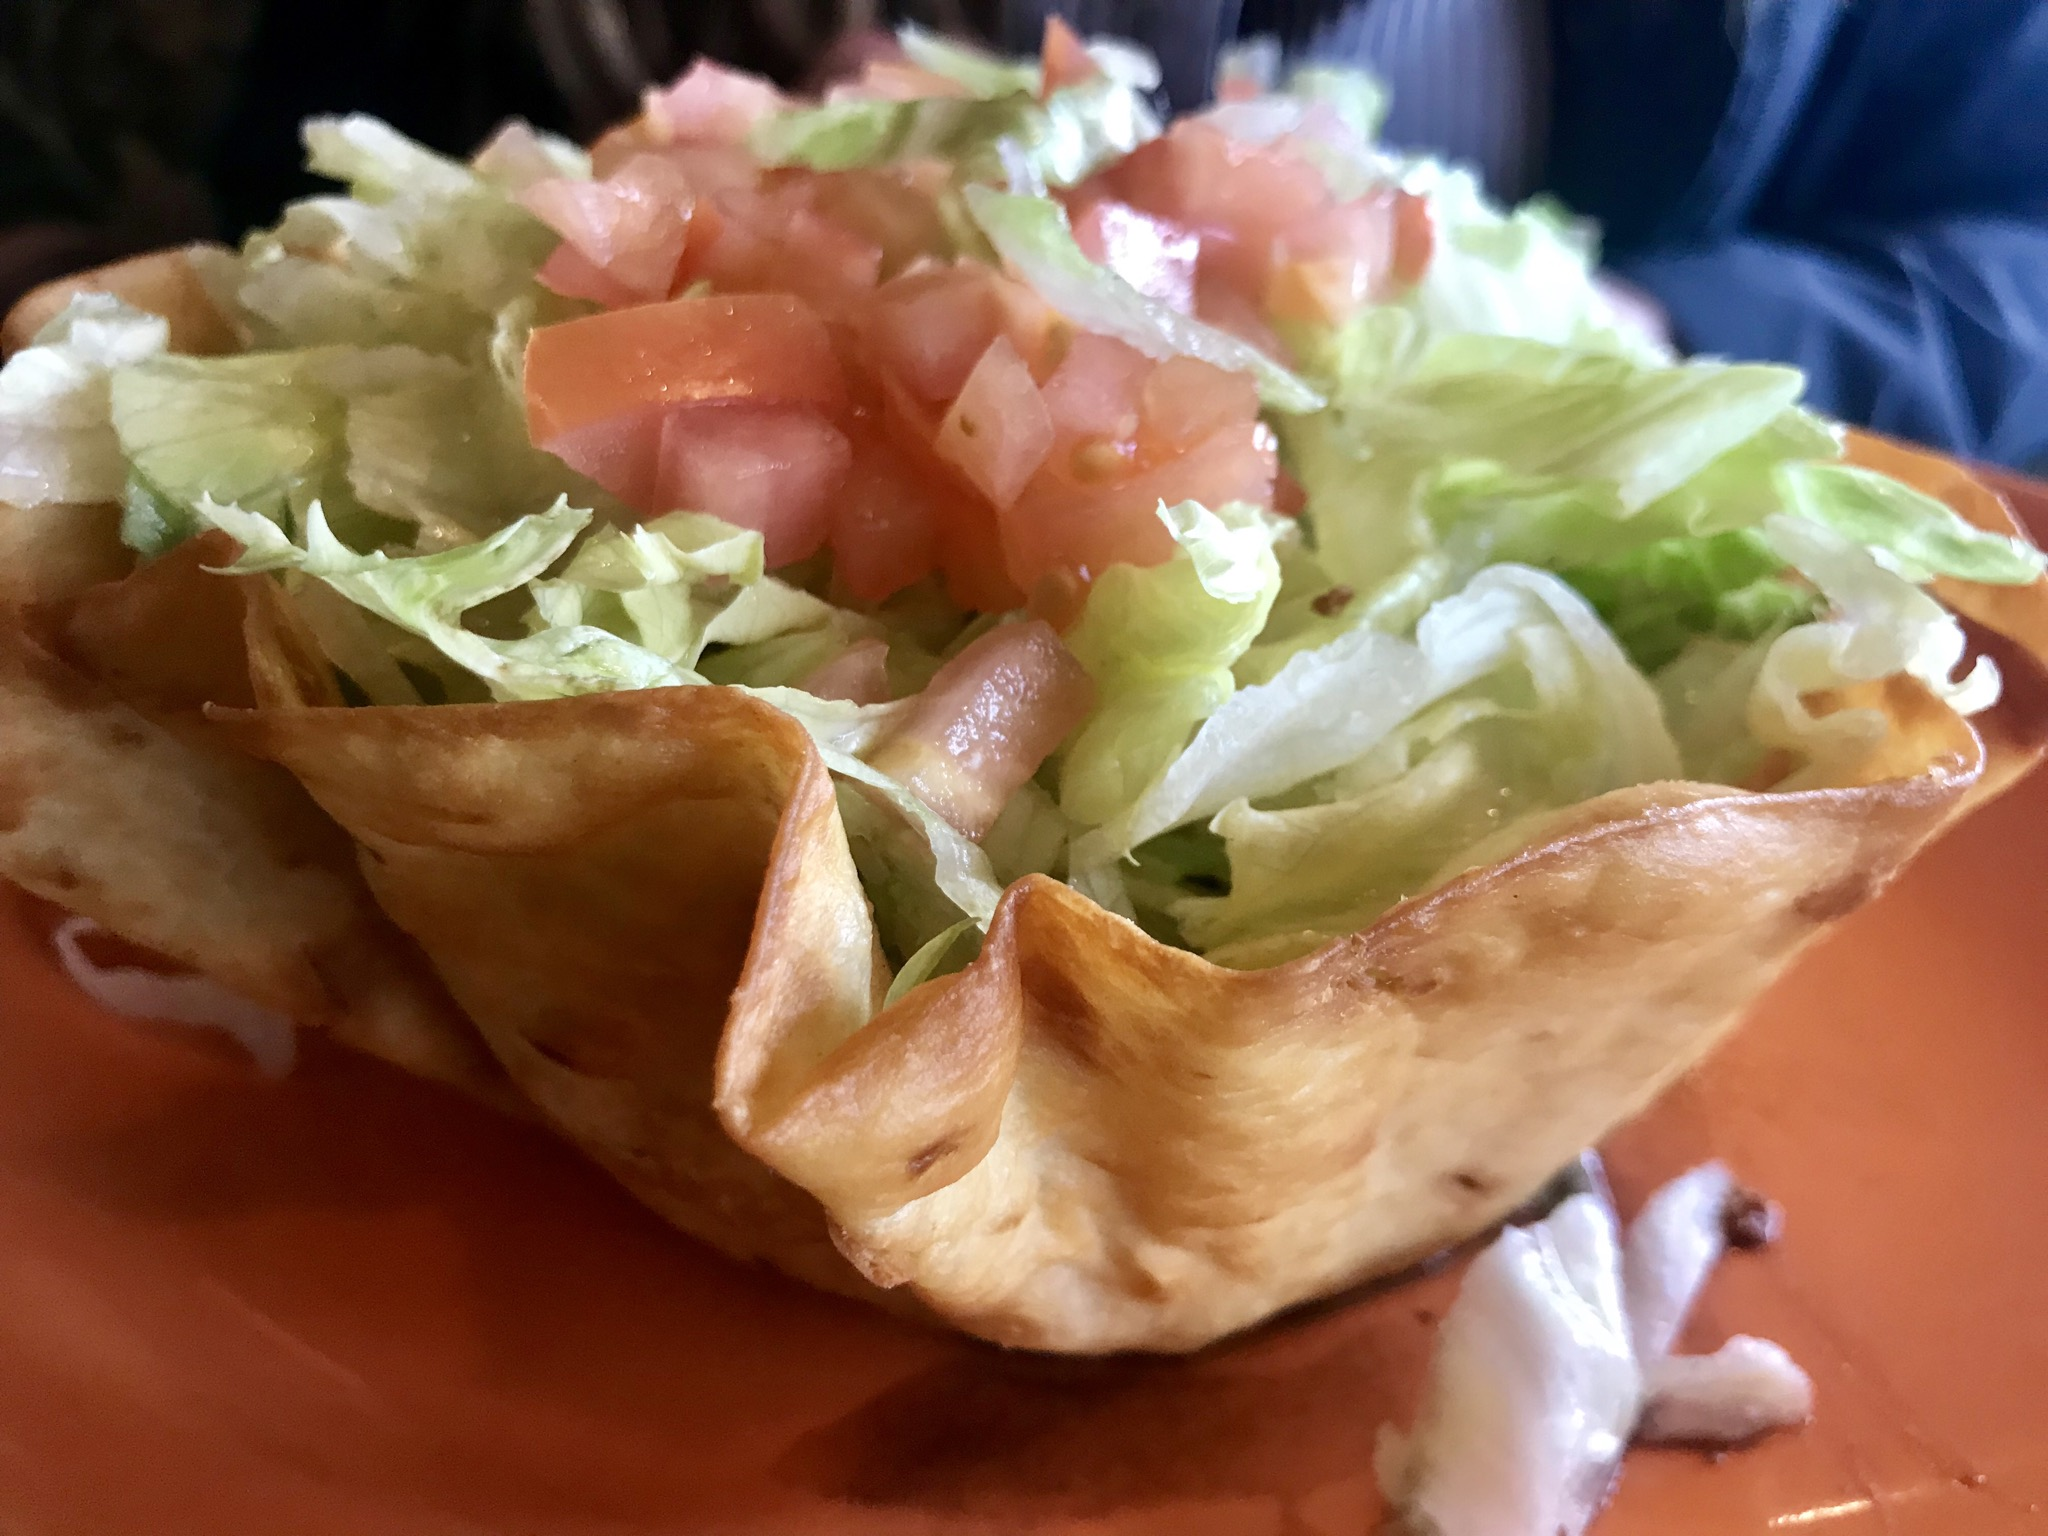 Beef Taco Salad at Inca Mexican Restaurant in Richland – November 27 2018